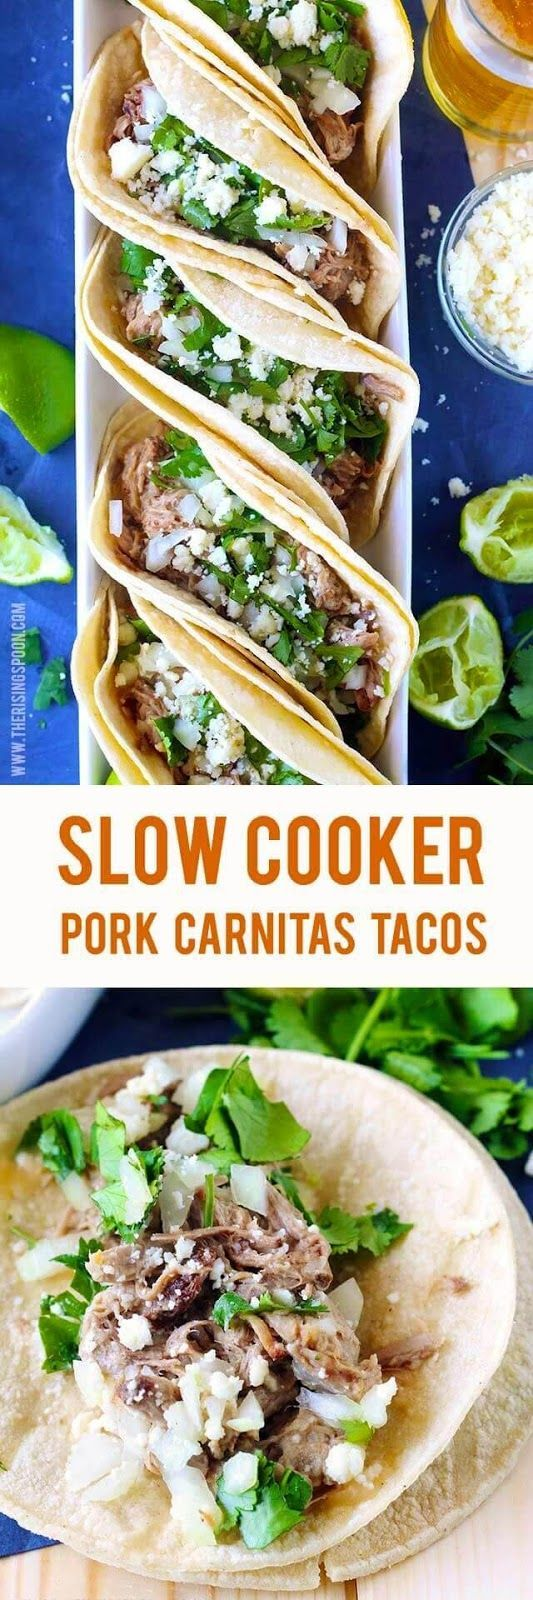 Imagine soft corn tortillas filled with tender, slightly crispy, and juicy shredded pork carnitas, chopped onion and cilantro, crumbled Mexican cheese, and a squeeze of fresh lime juice. Are you salivating yet? Carnitas tacos are perfect for a quick weekn